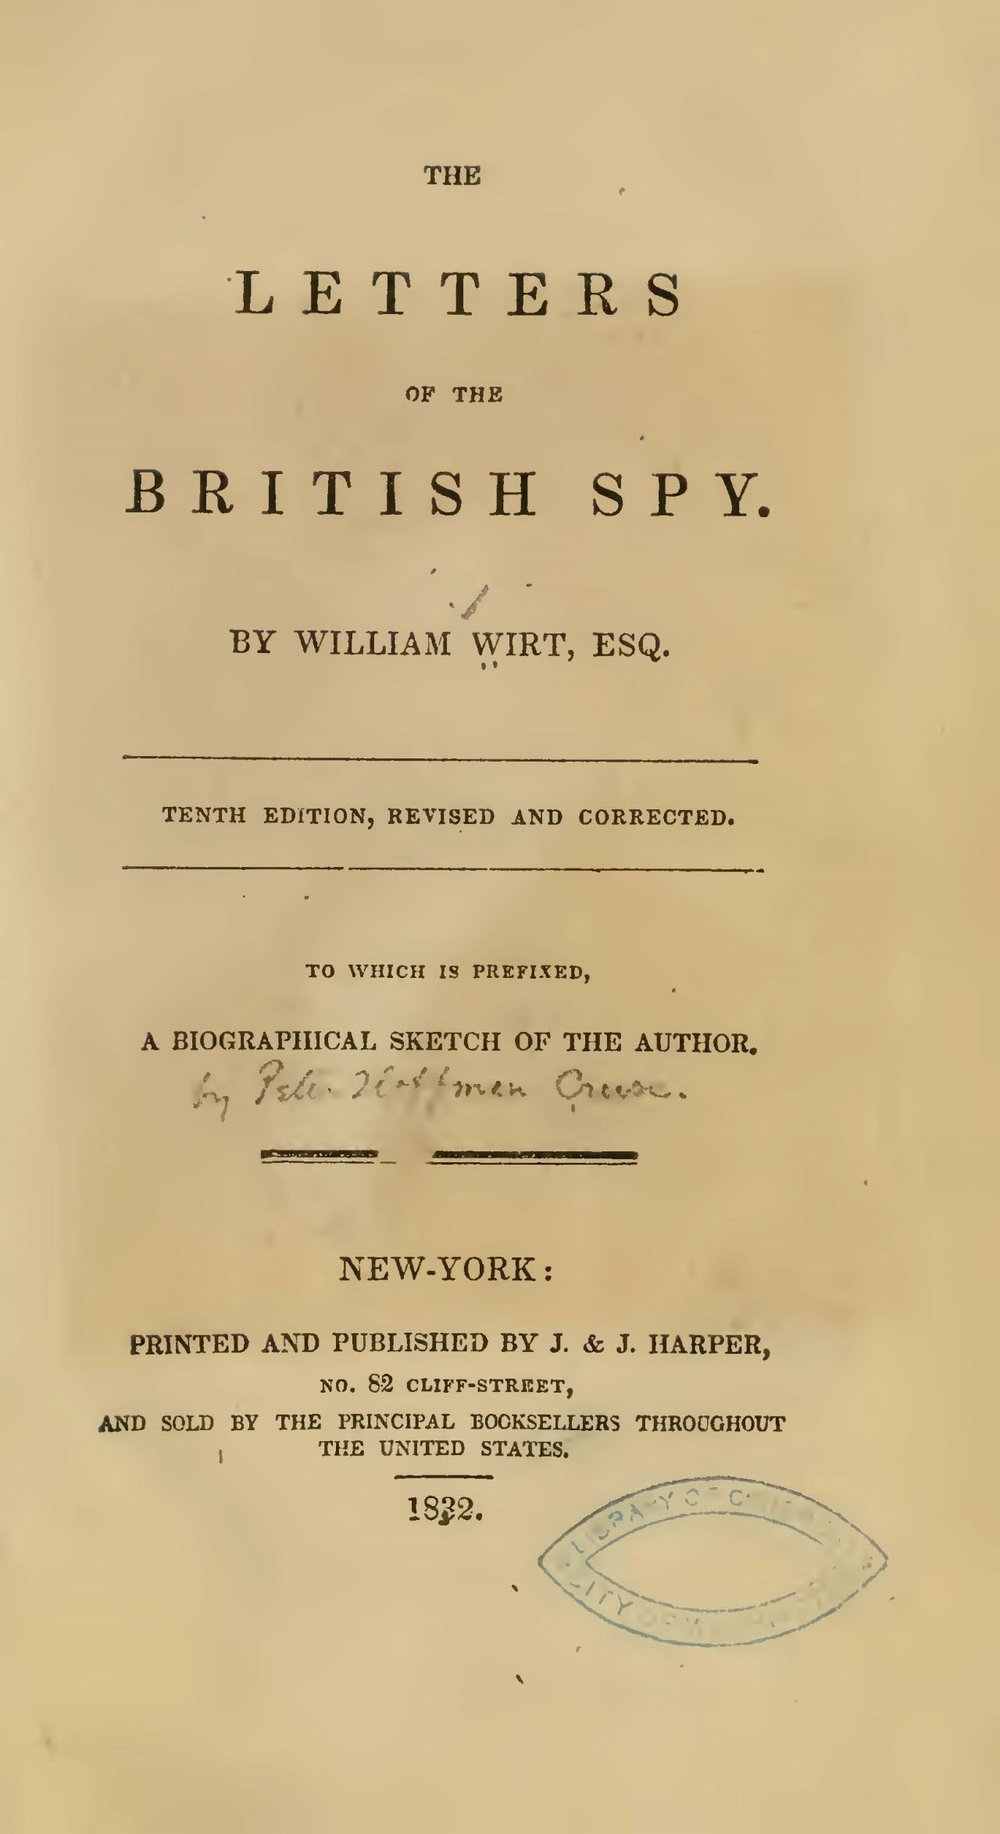 Wirt, William, The Letters of the British Spy Title Page.jpg